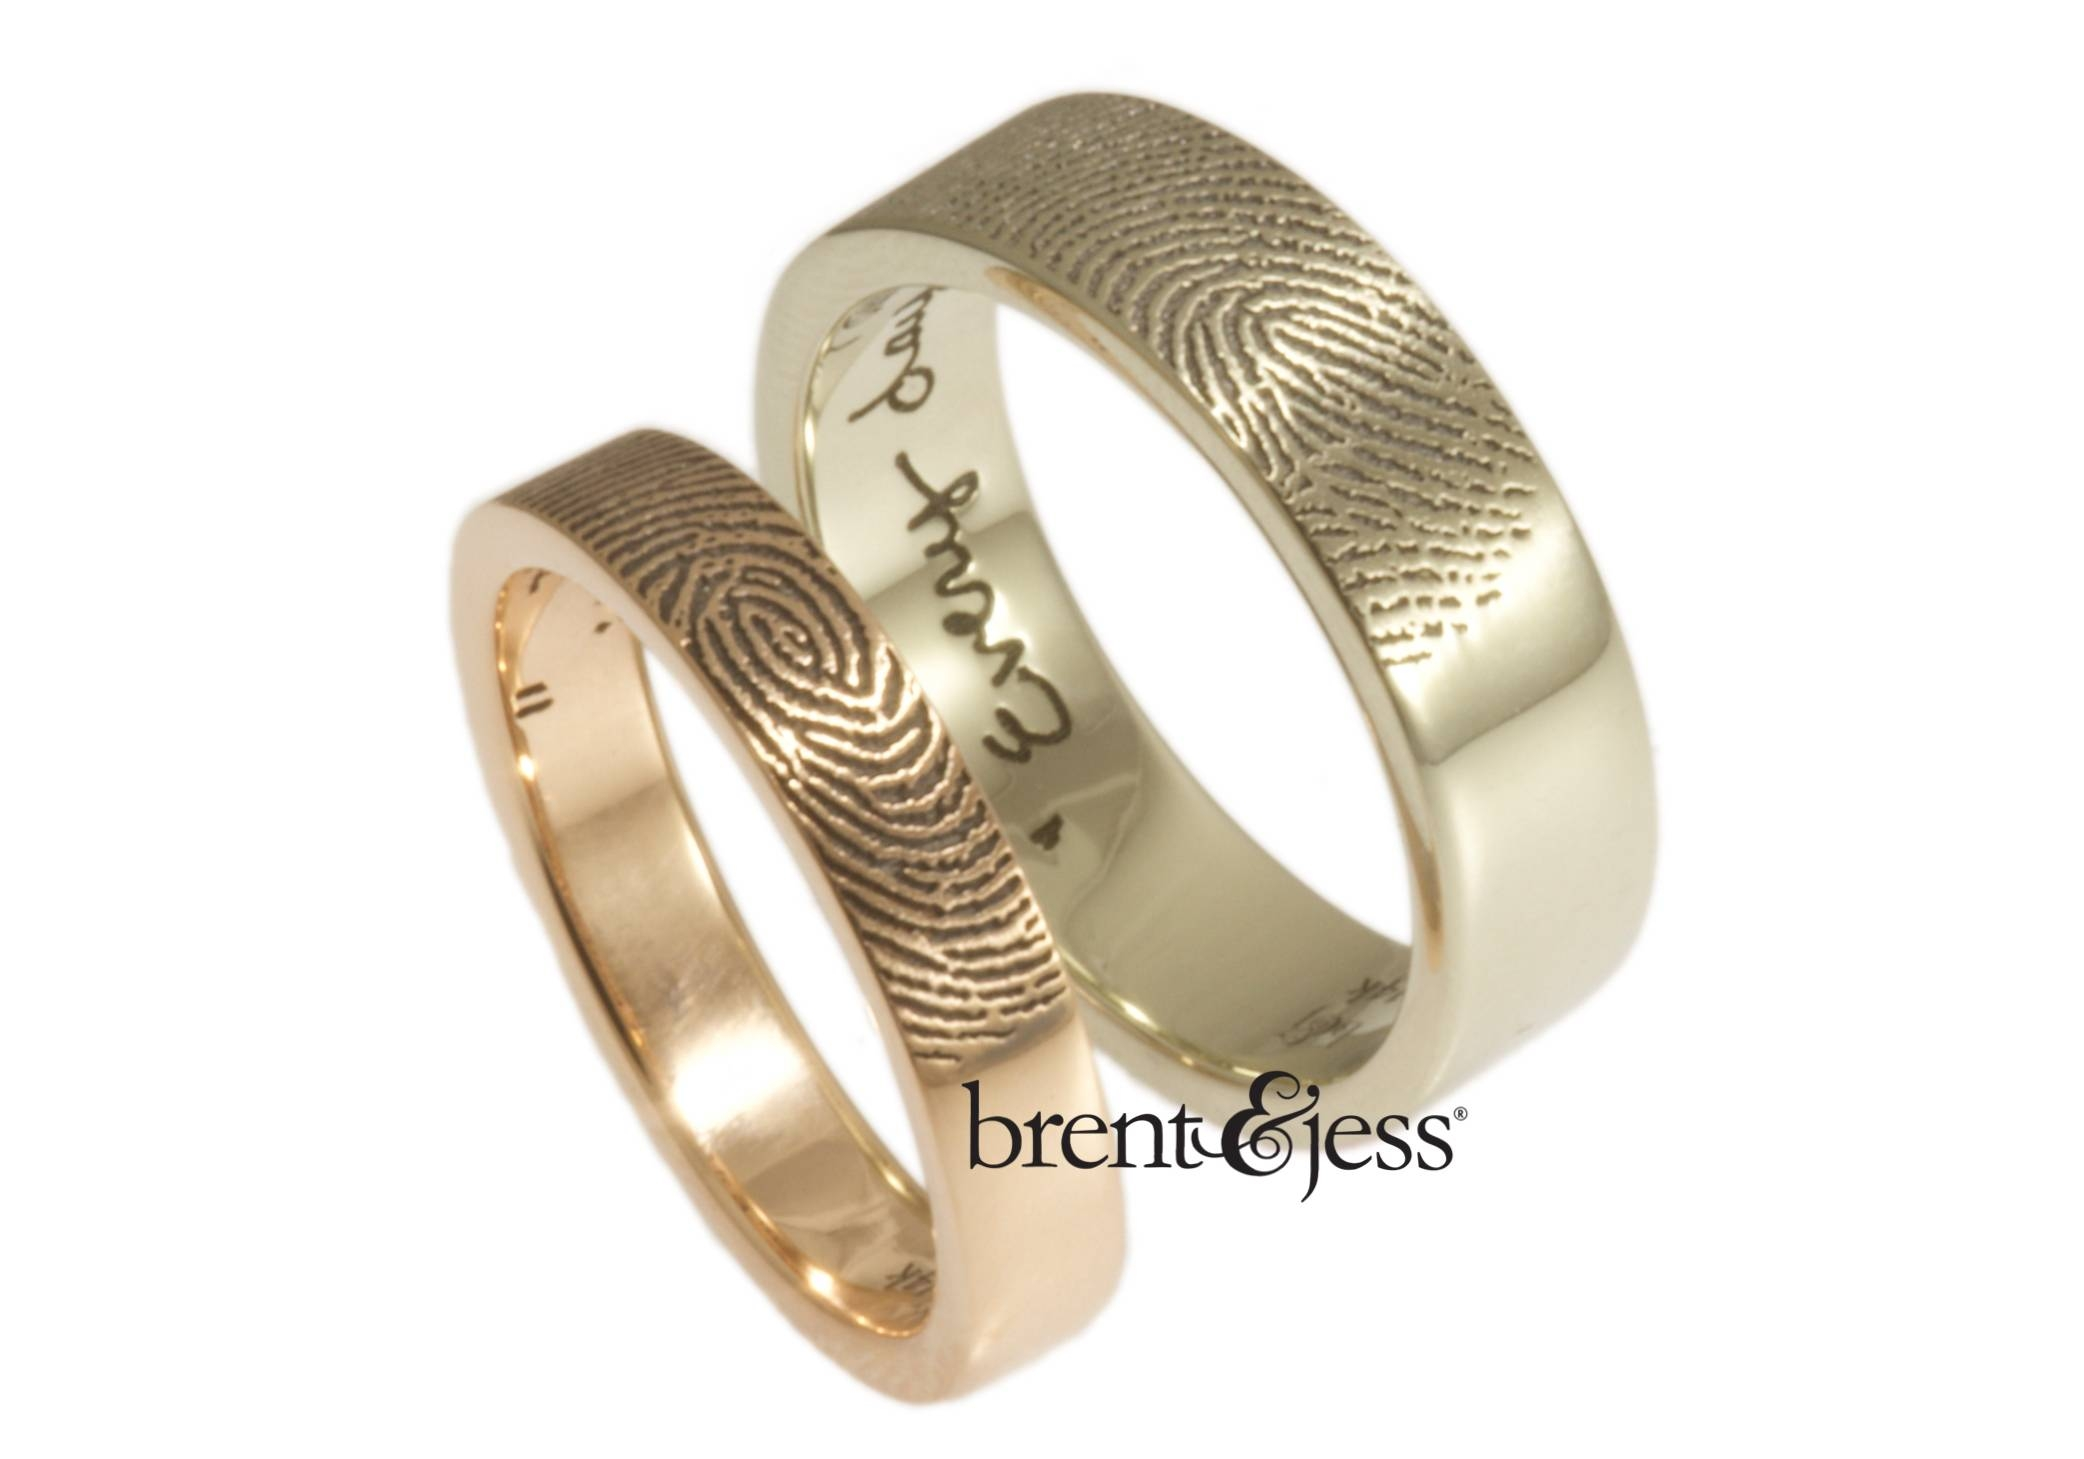 Brent&jess Fingerprint Wedding Rings · Ruffled With Wedding Rings With Fingerprint (View 2 of 15)